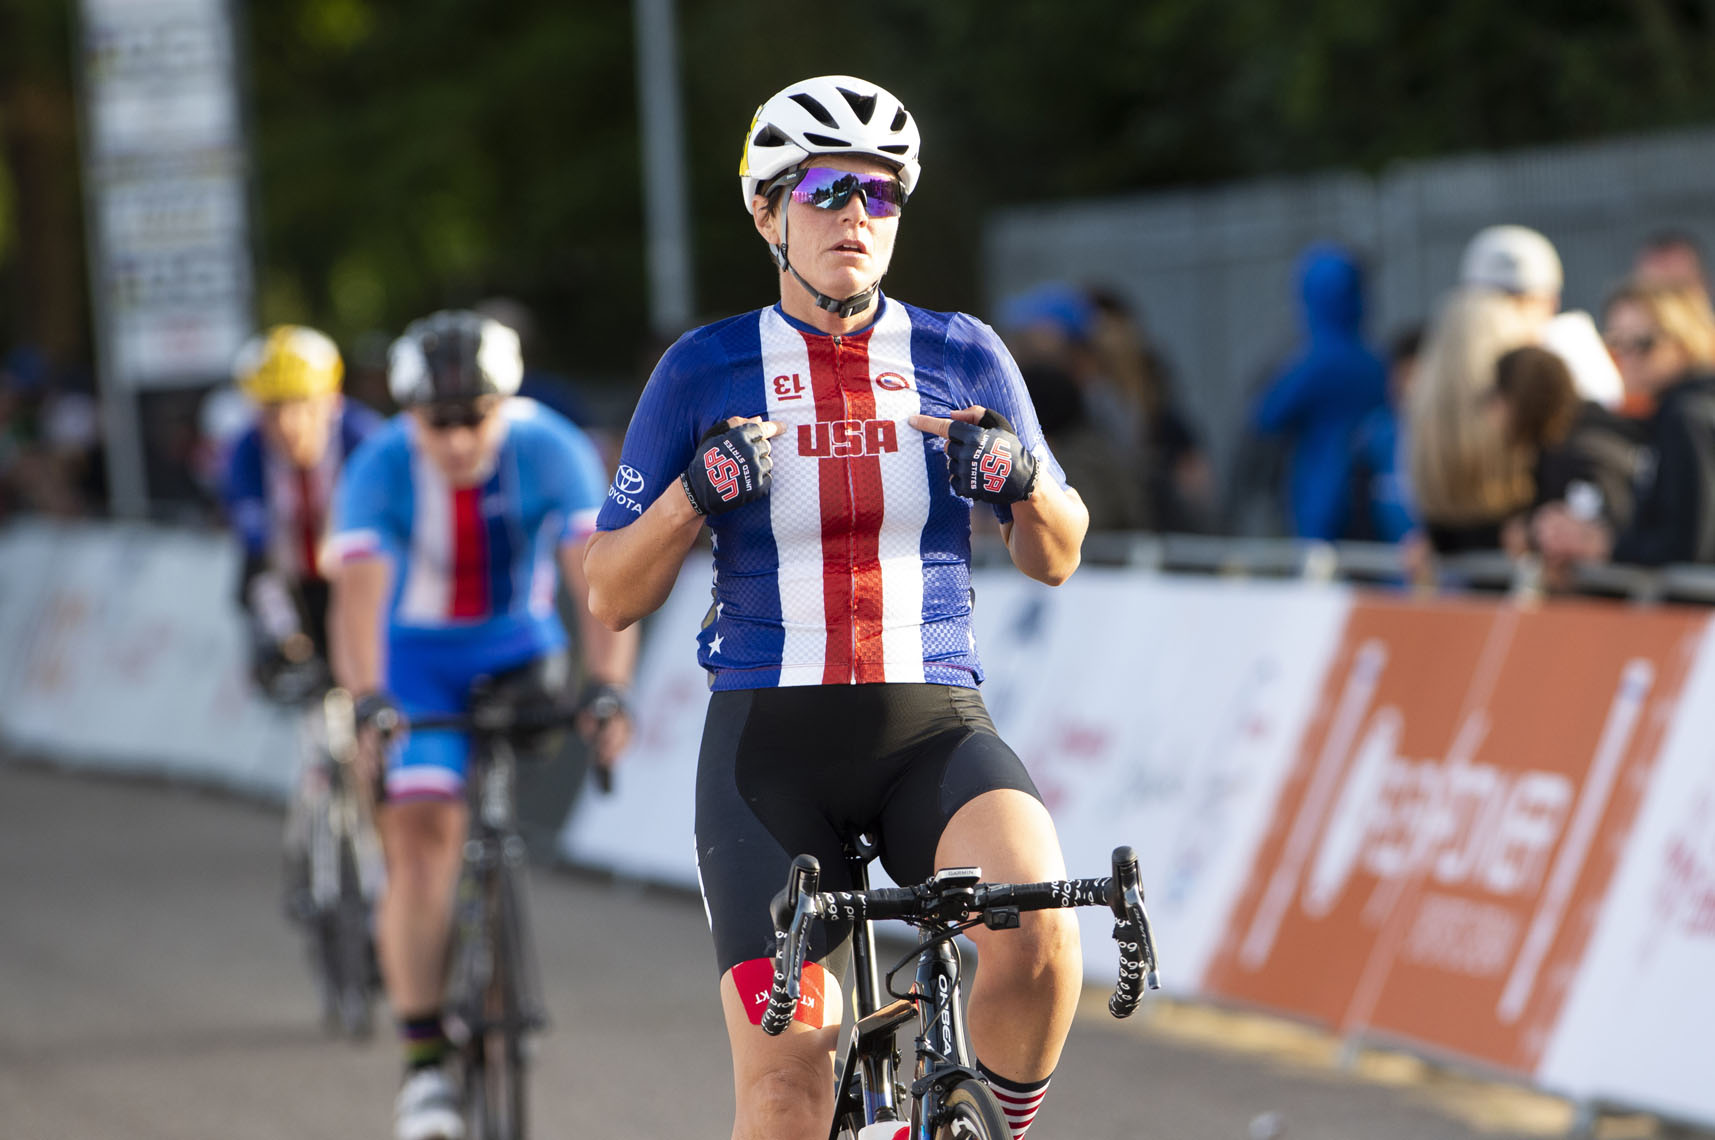 Shawn Morelli, 2019 Paracycling Road World Championships